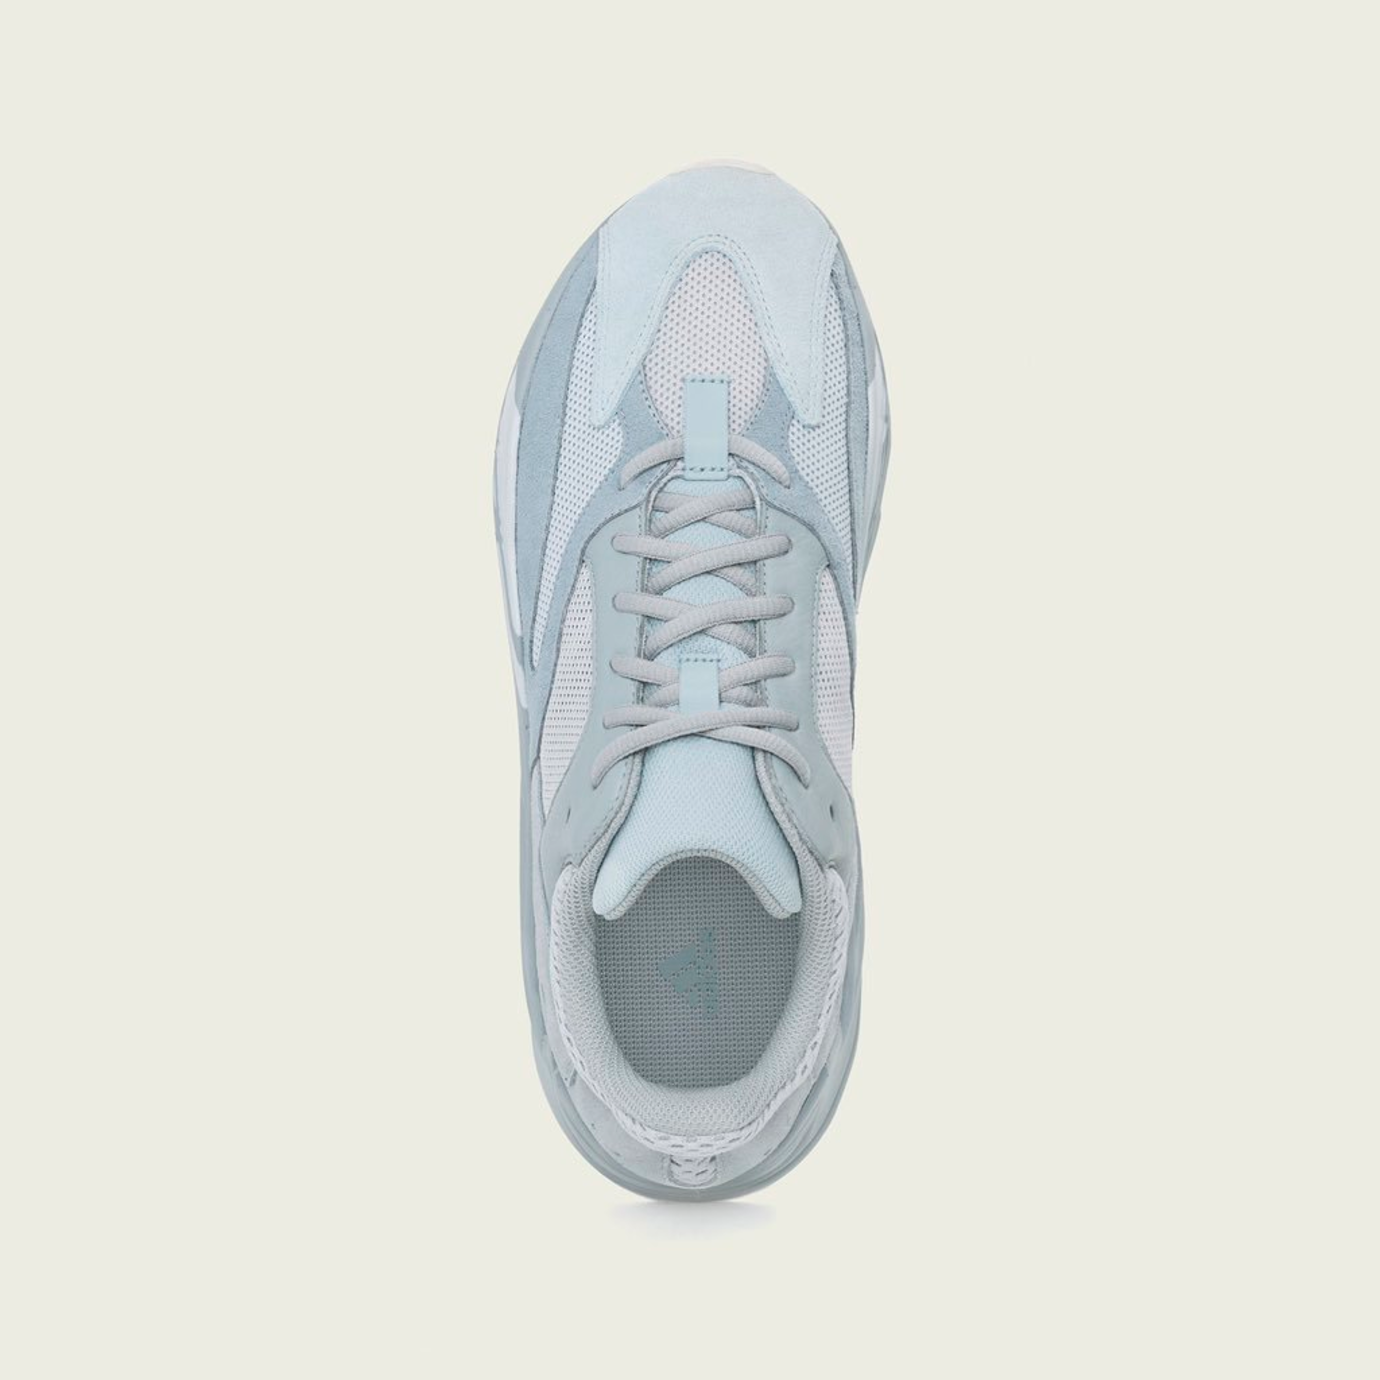 wholesale dealer 1820e 5482a Where To Get The Yeezy 700